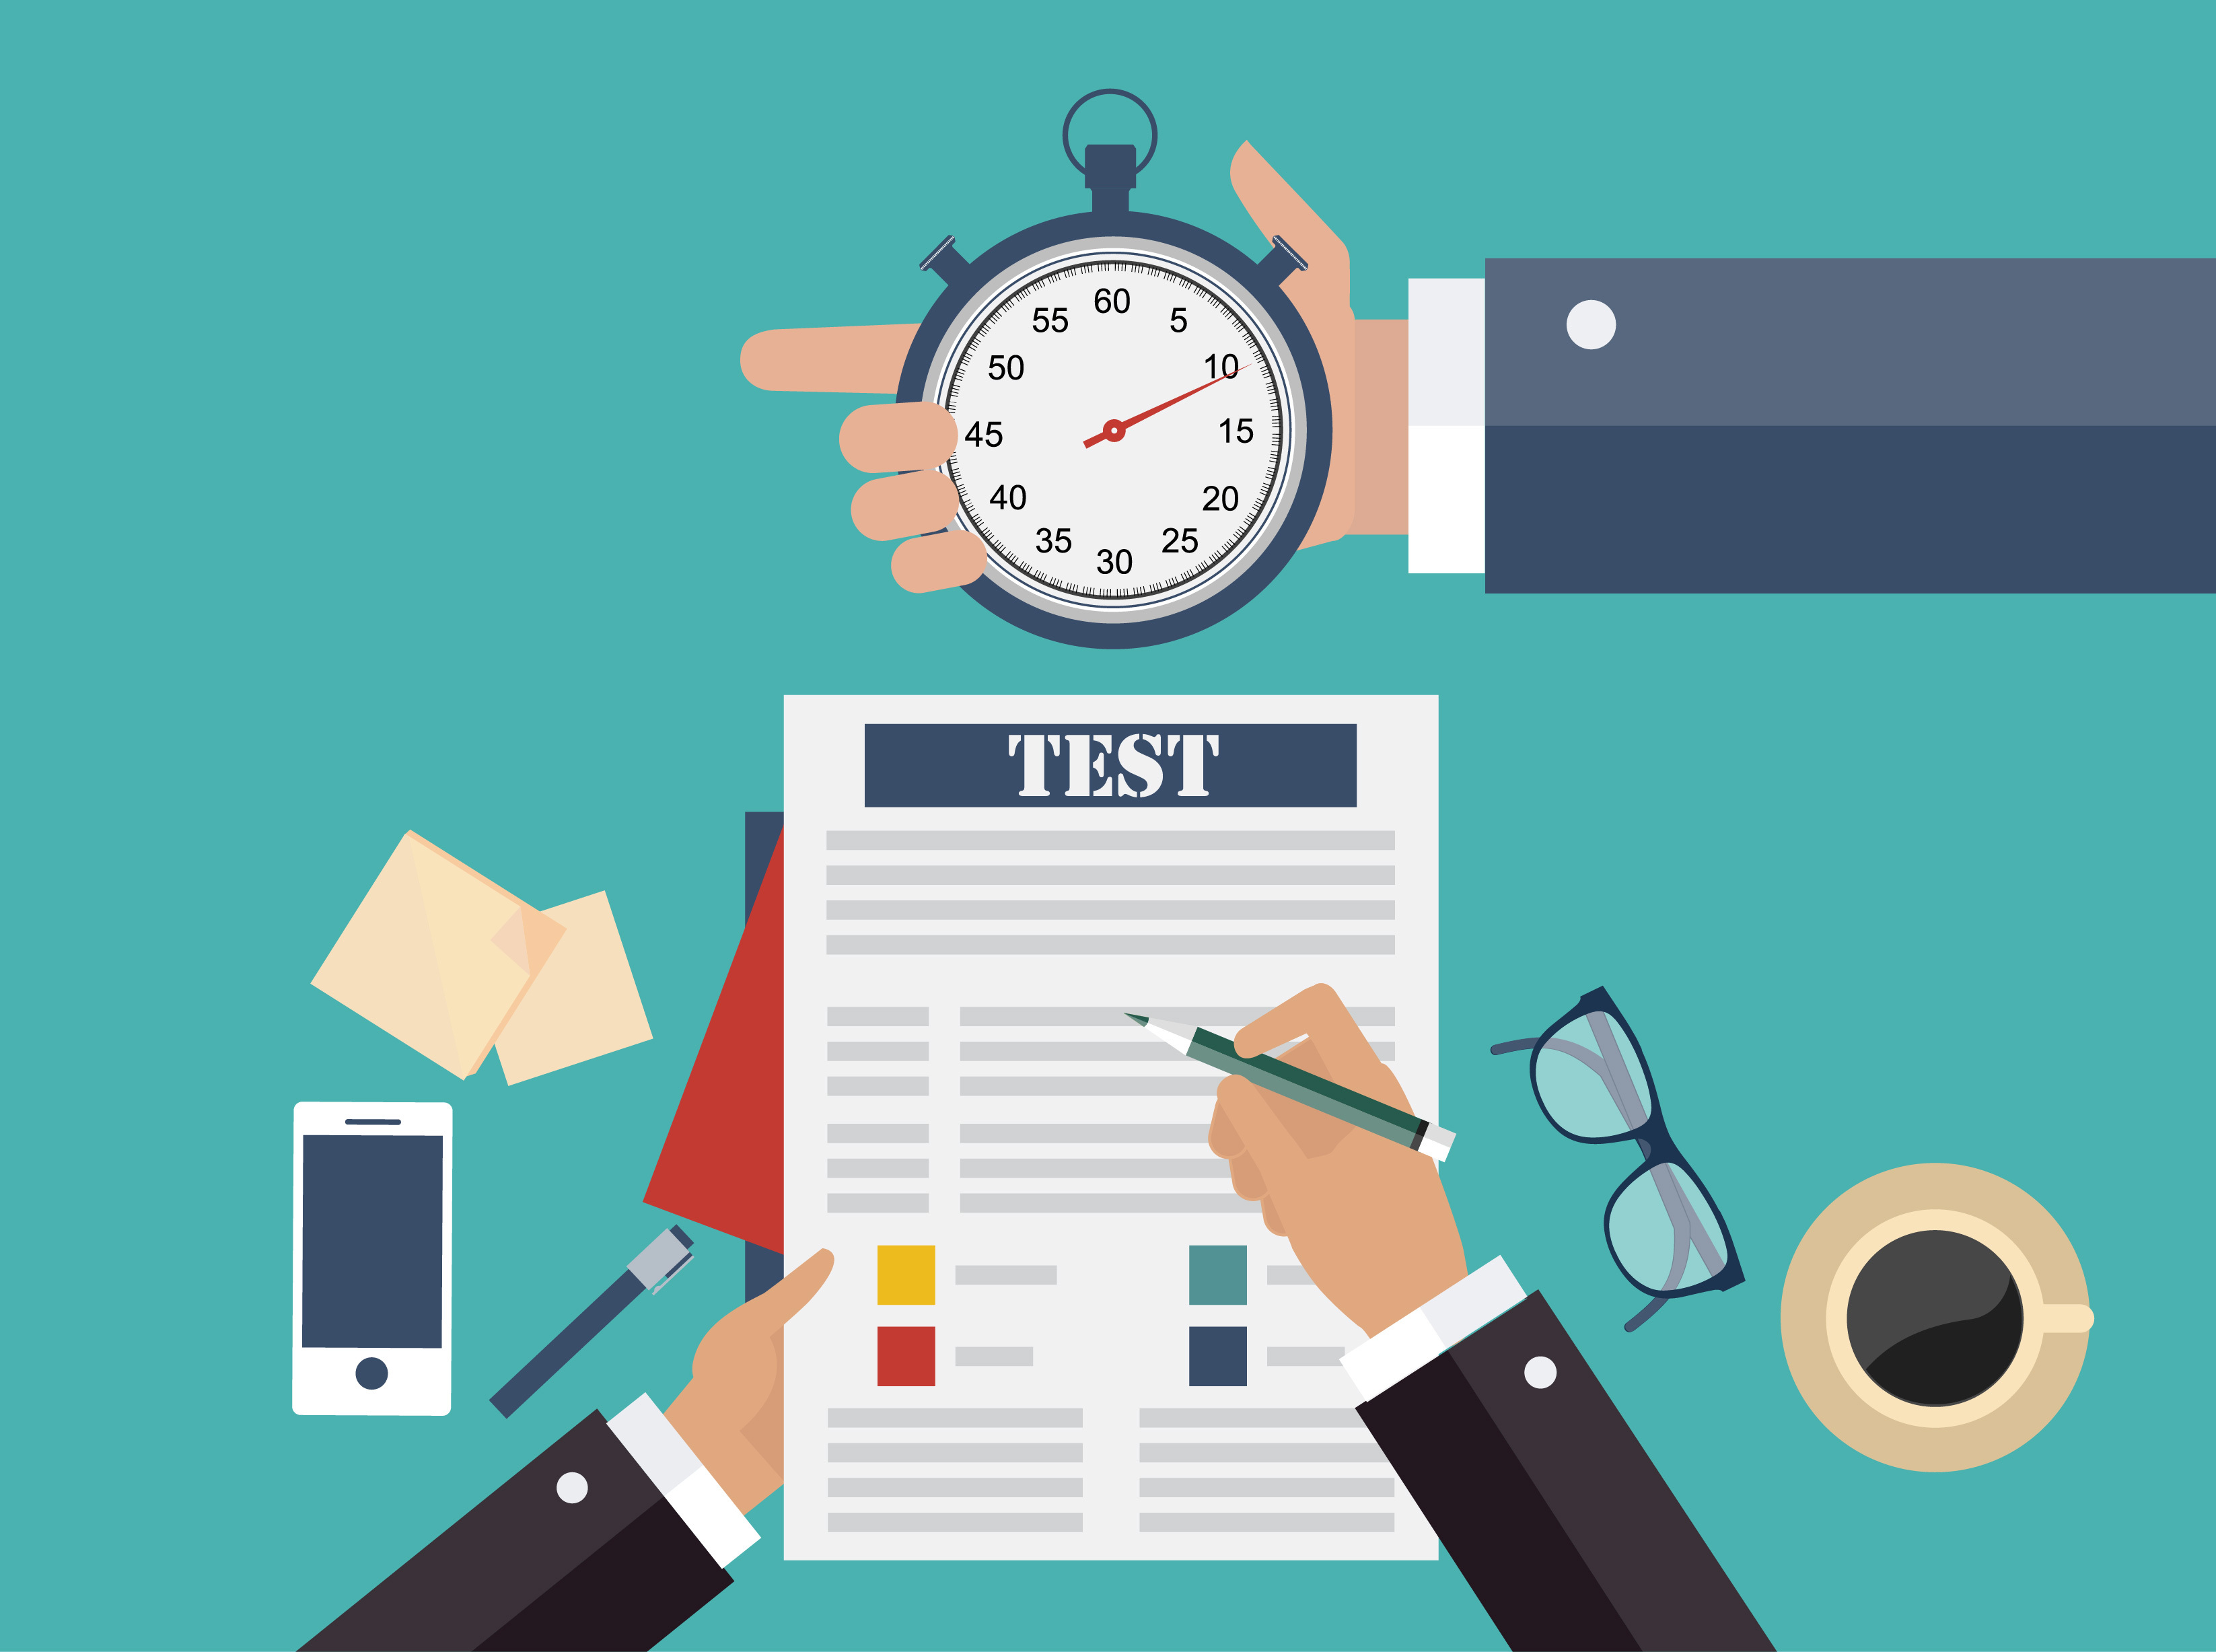 https://advice.careerbuilder.co.uk/posts/how-to-succeed-at-management-interview-tests